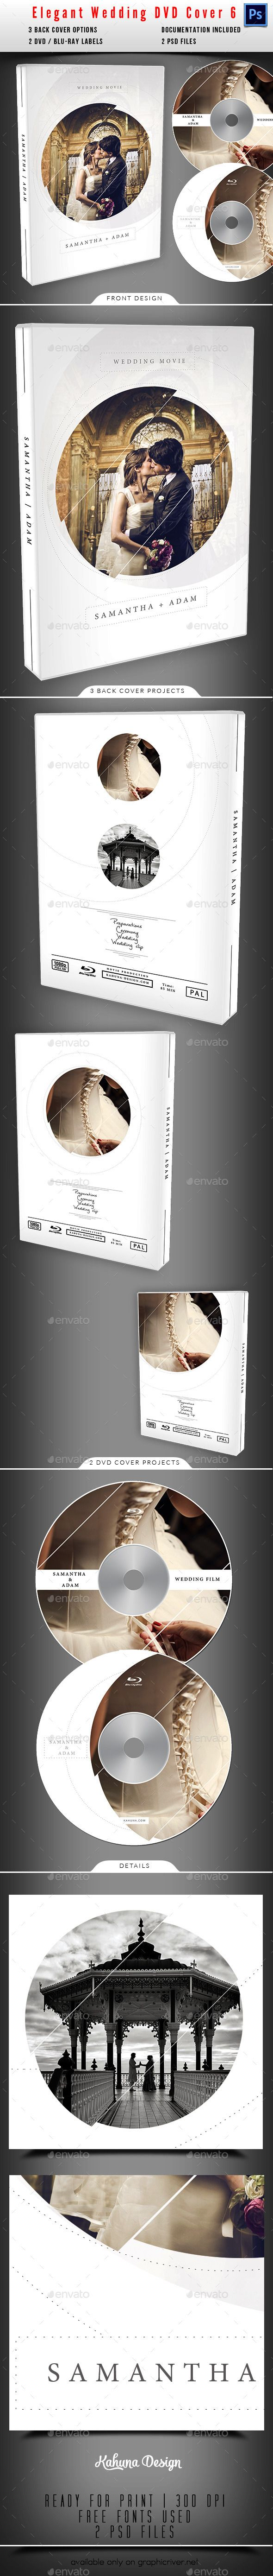 Wedding DVD / Blu-Ray Cover 06  #dvds #elegant #label • Available here → http://graphicriver.net/item/wedding-dvd-bluray-cover-06/11395996?s_rank=304&ref=pxcr